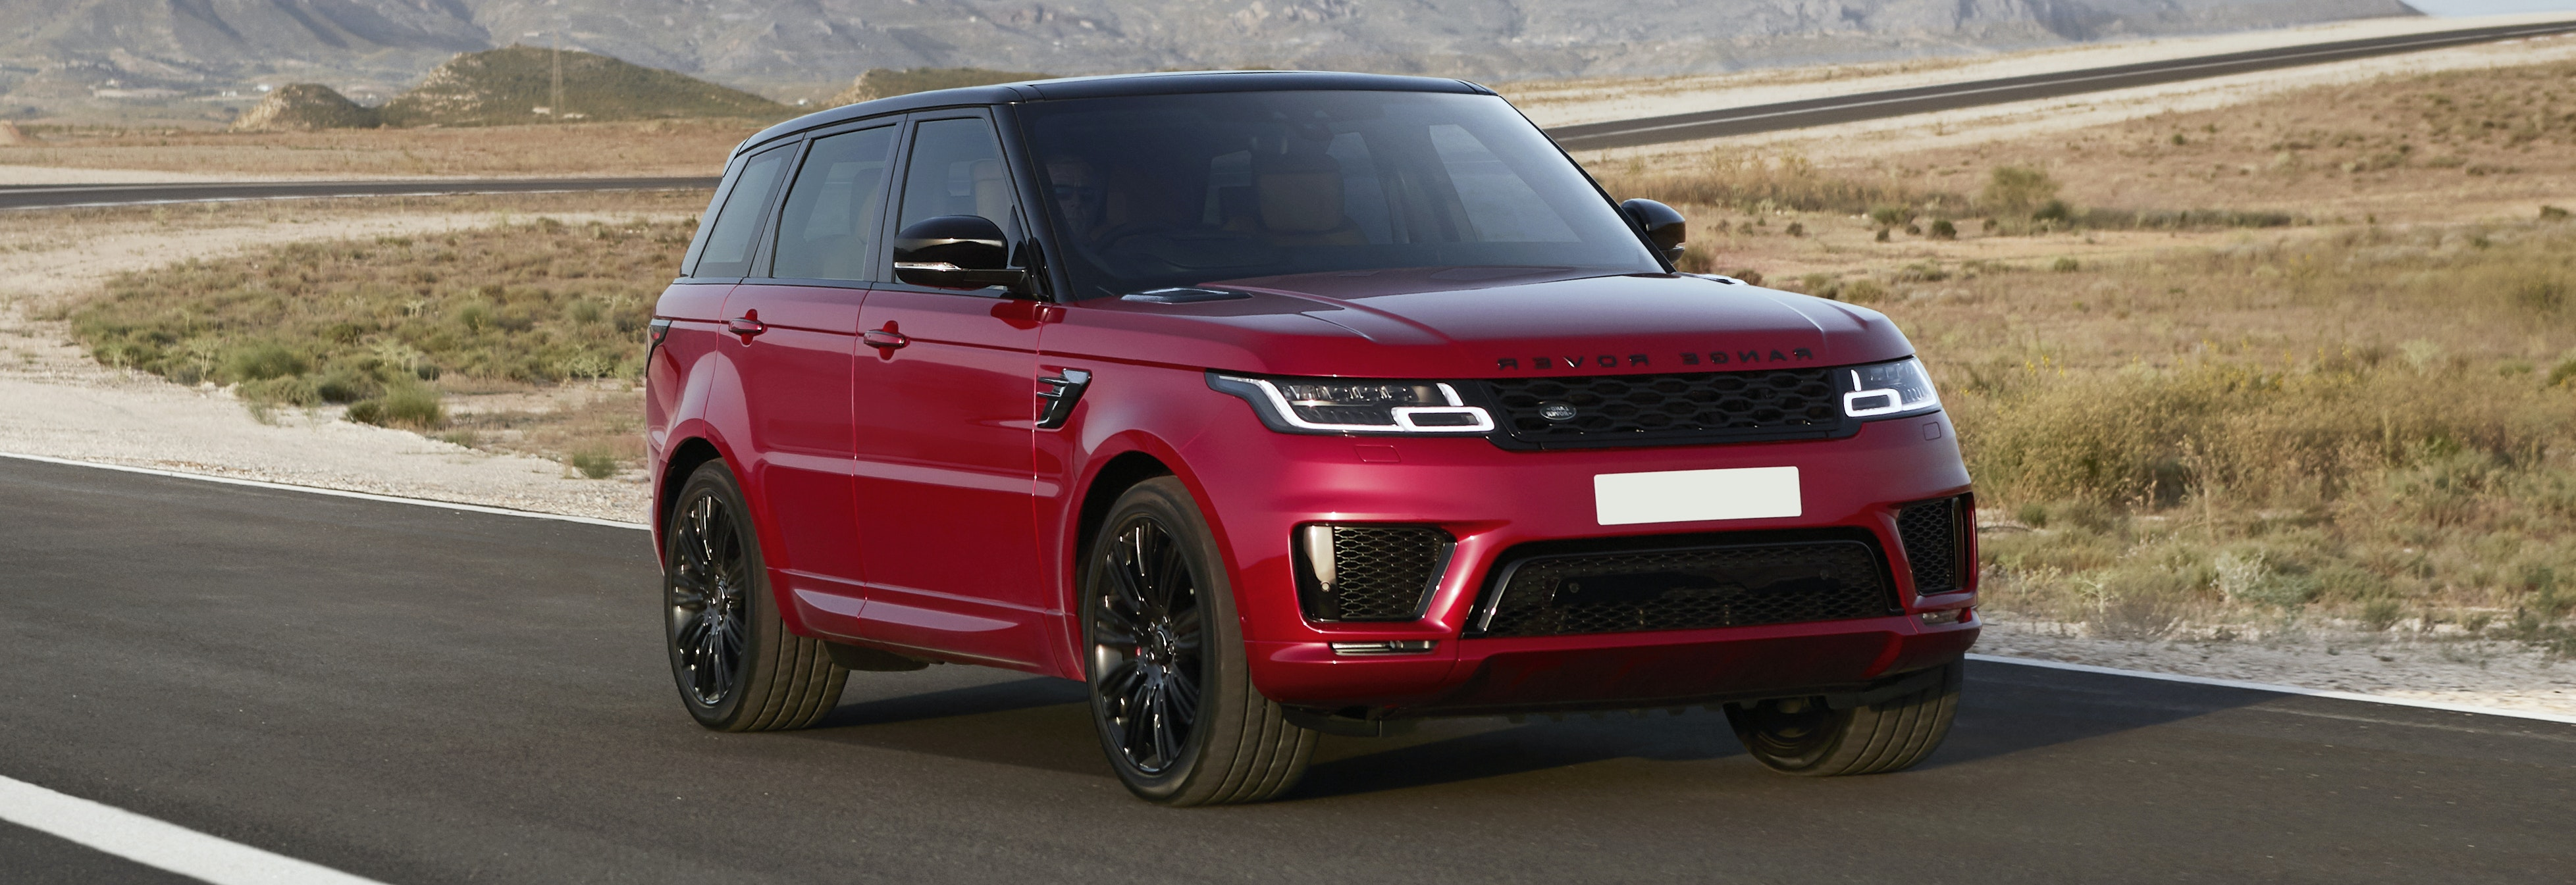 2018 range rover sport red driving front